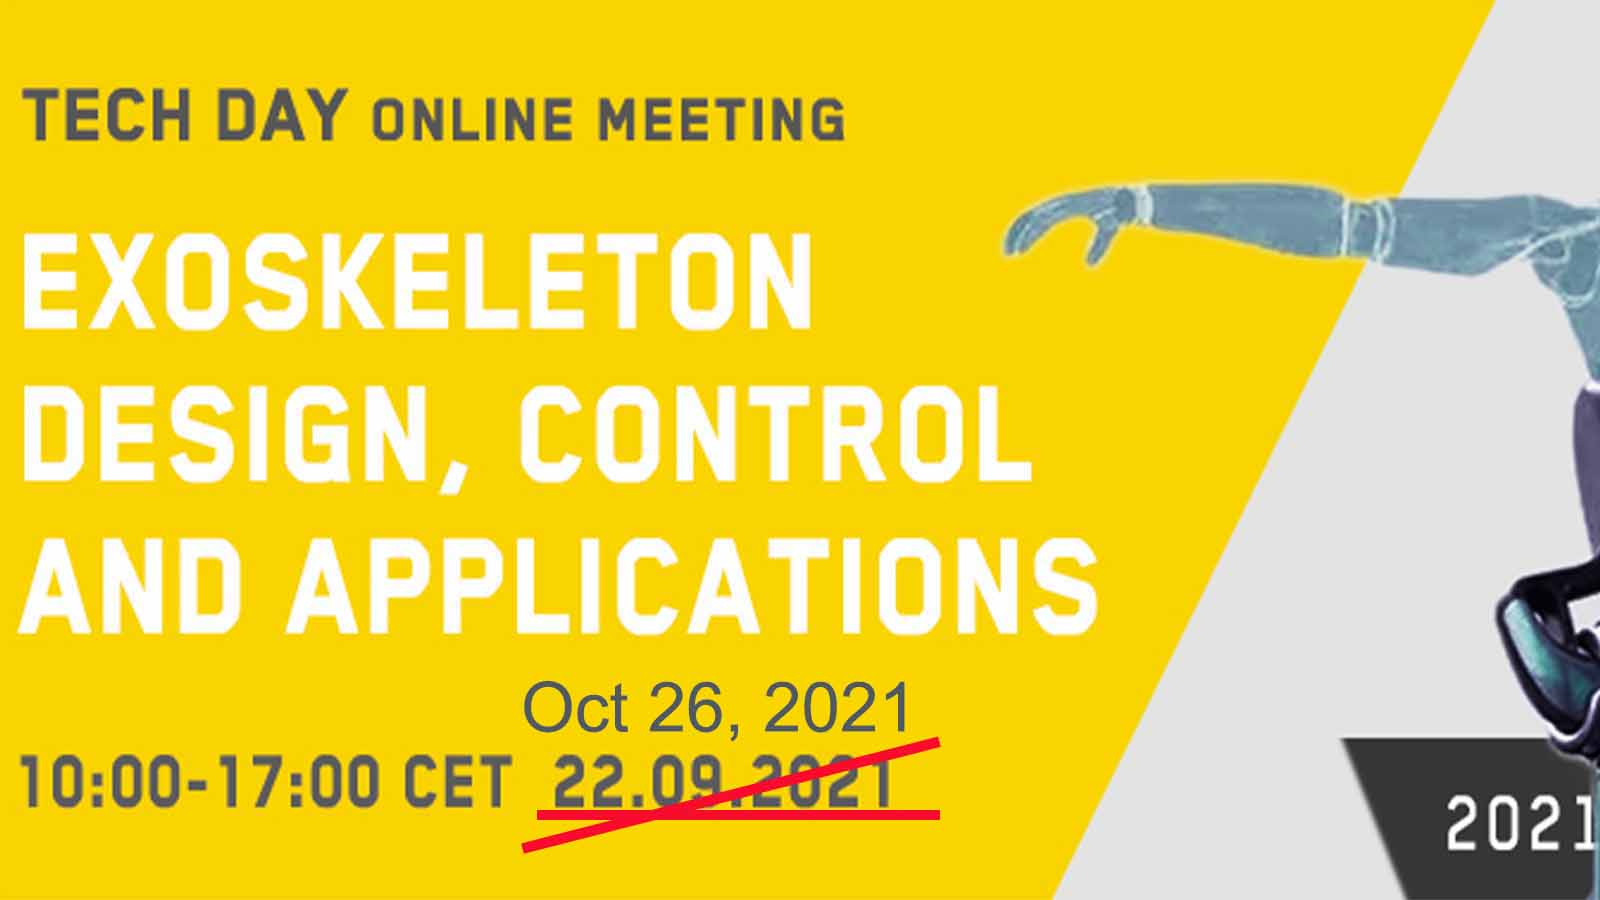 TechDay Exoskeleton Design Control and Applications Oct 2021jpg